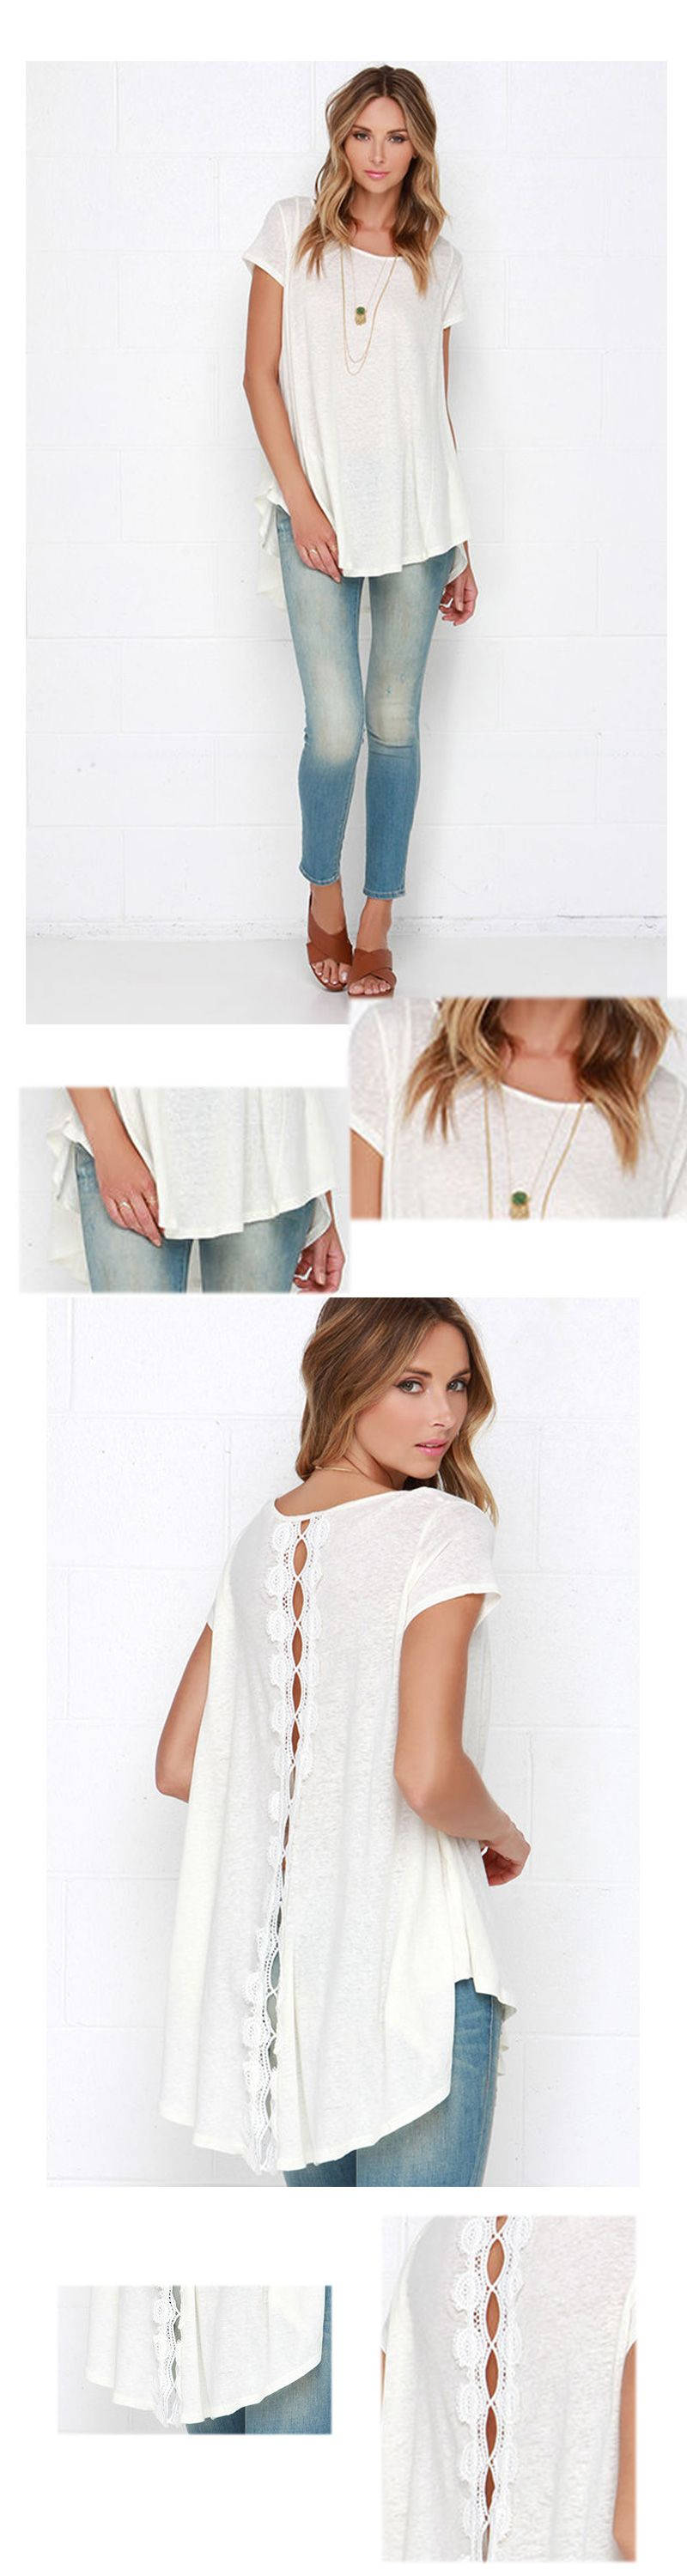 White Short Sleeve With Lace High Low T | Nähmuster, Kleider machen ...